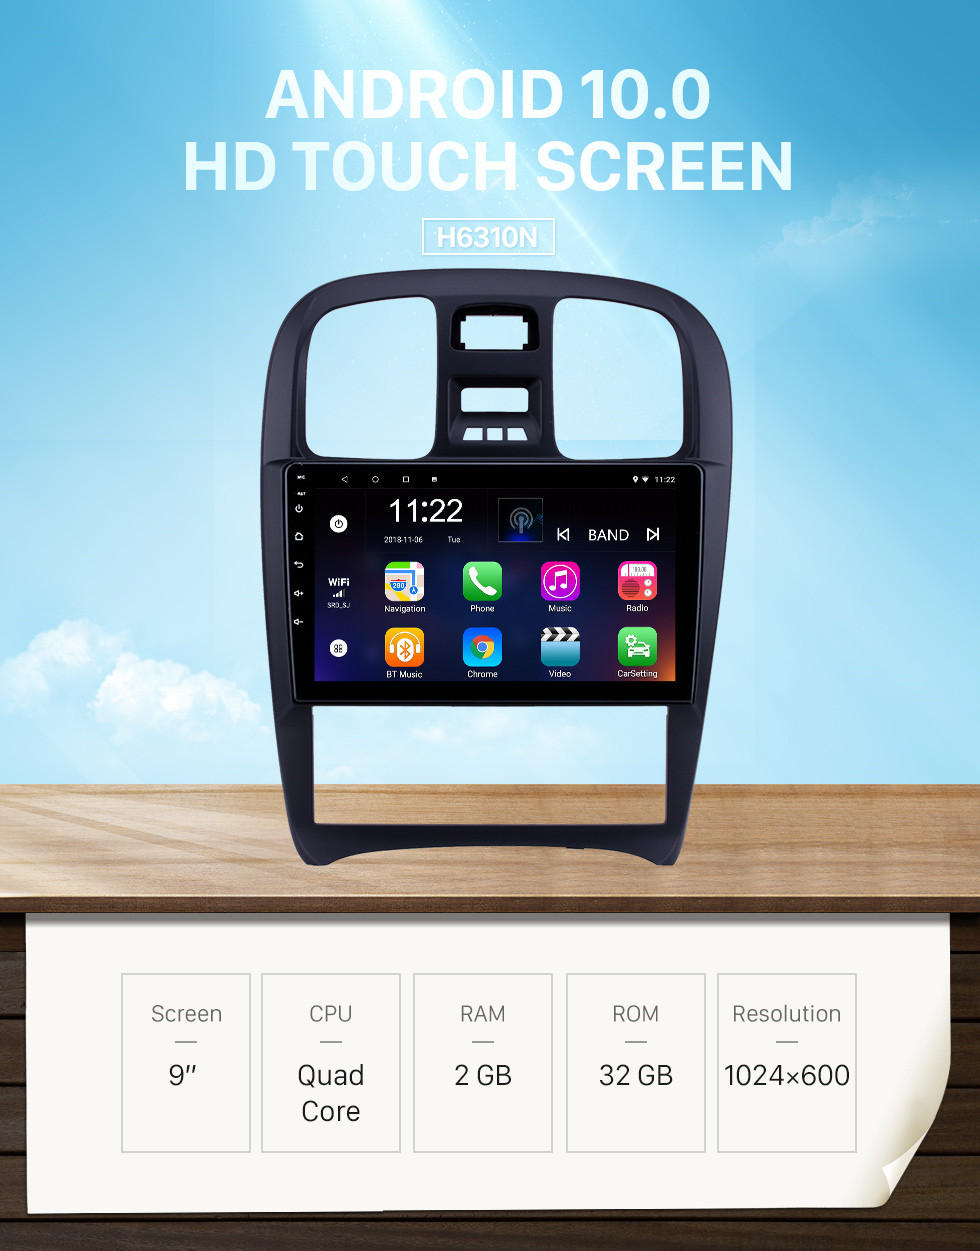 Seicane HD Touchscreen 9 inch Android 10.0 GPS Navigation Radio for 2003-2009 Hyundai Sonata with Bluetooth AUX support Carplay TPMS